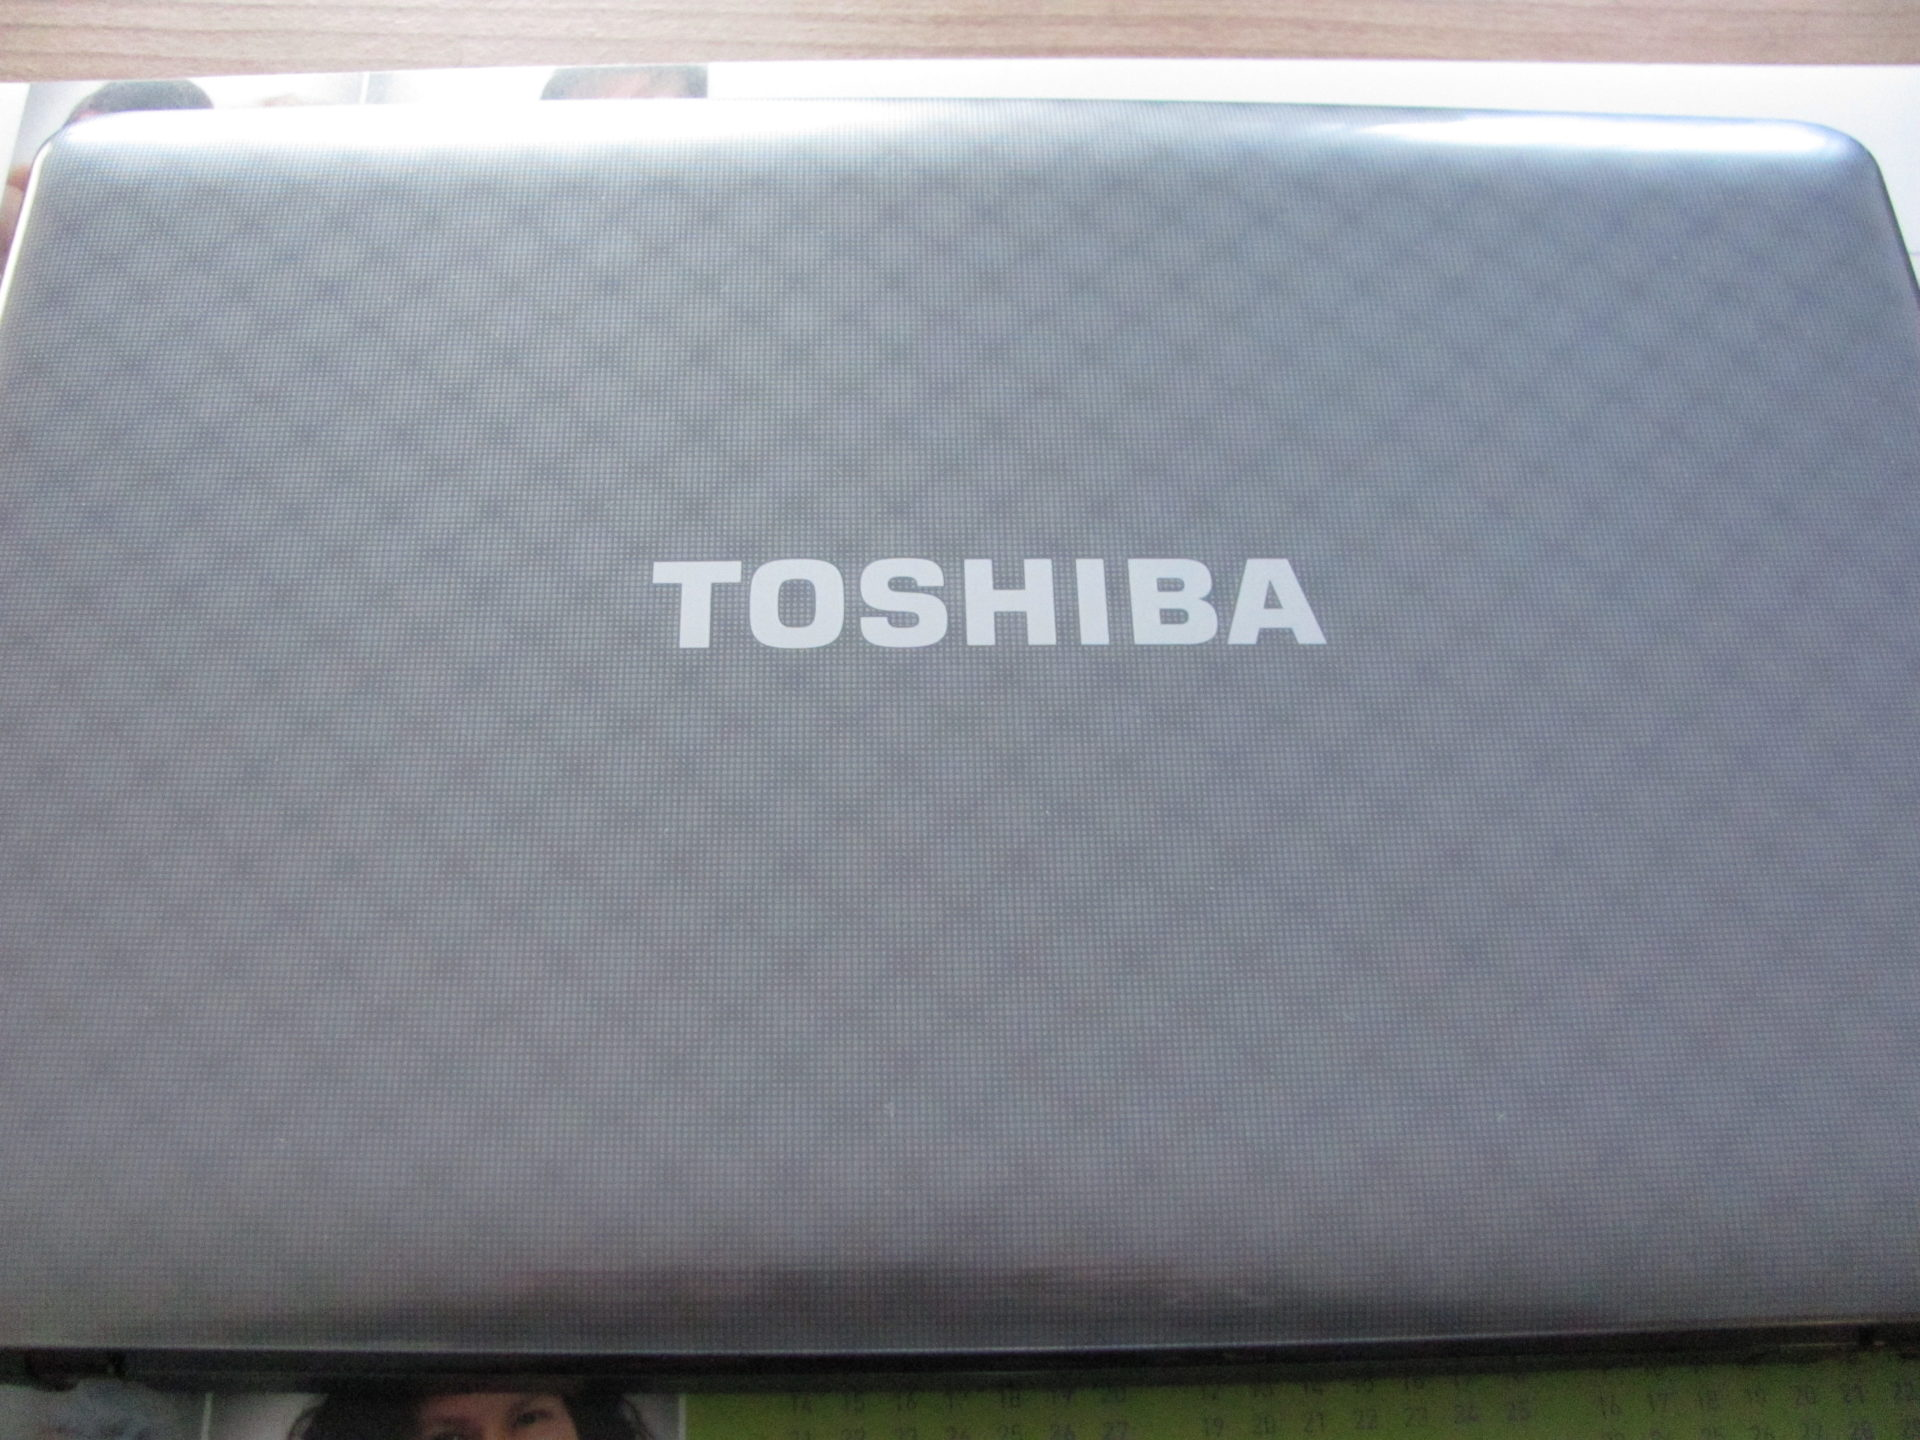 Toshiba Satellite L750/L755